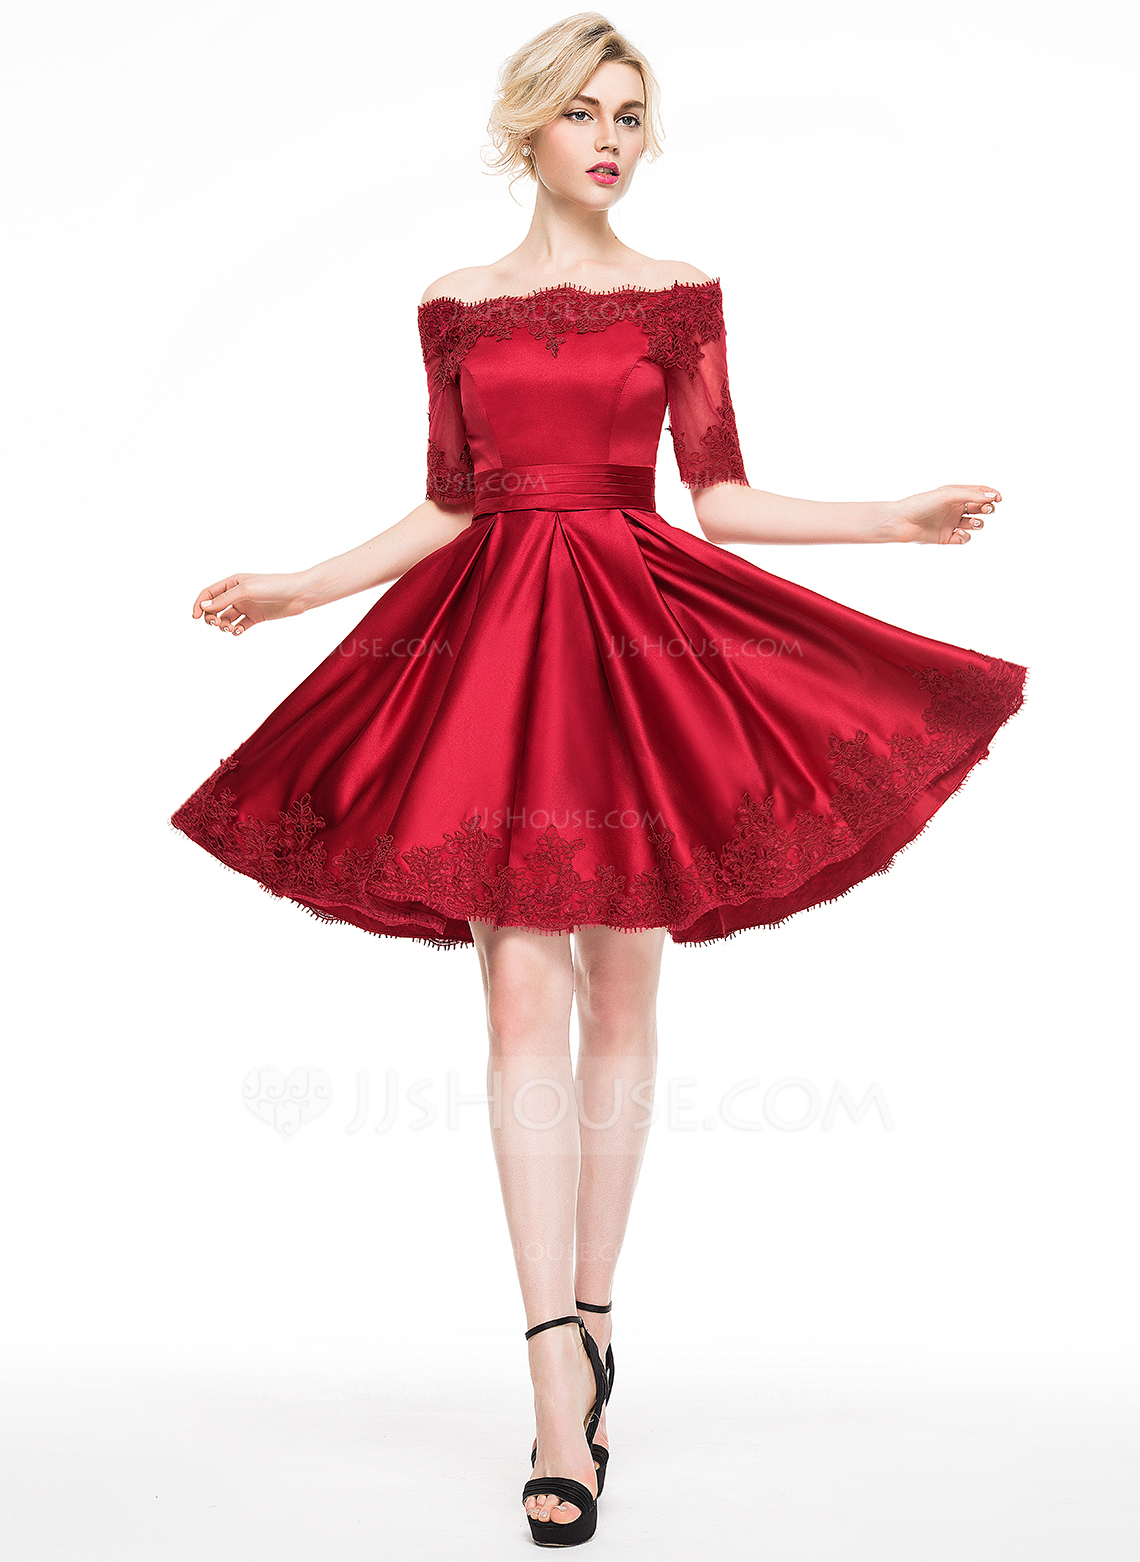 a-line/princess off-the-shoulder knee-length satin cocktail dress. loading  zoom DIVRXEU